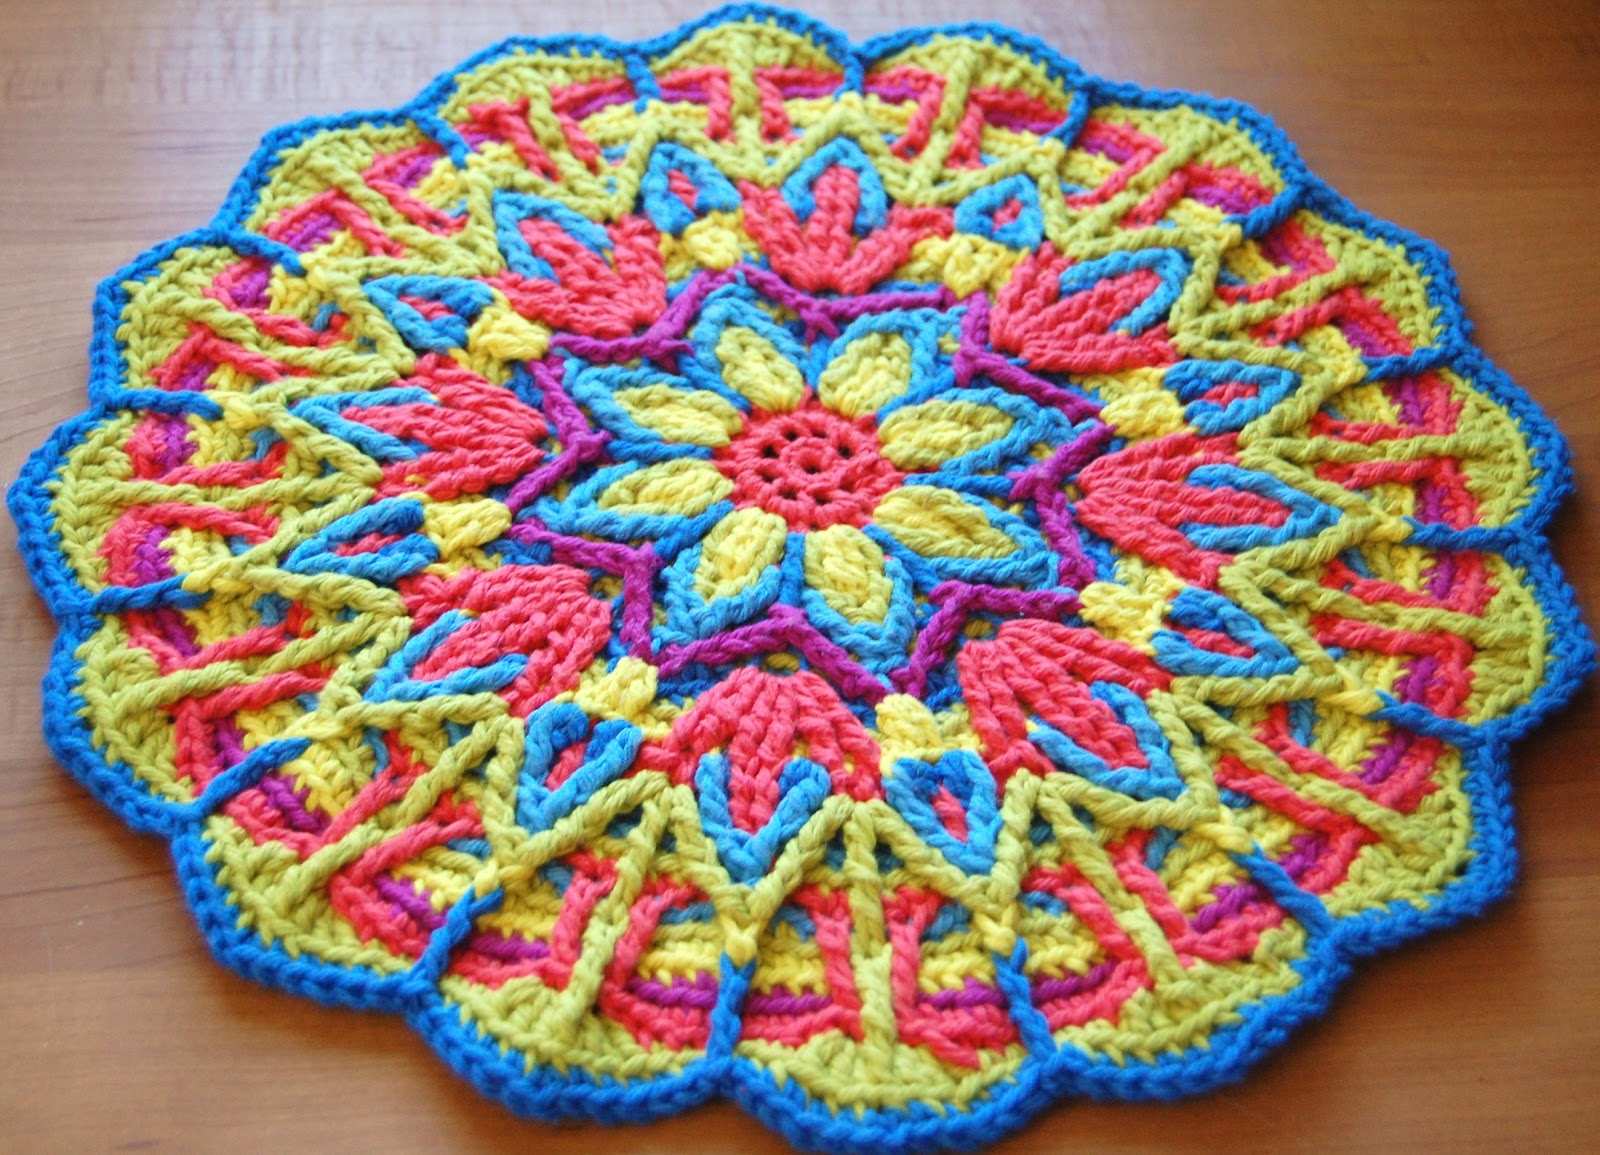 Crochet Patterns Using Mandala Yarn : ... Crochet Mandala Pattern, Crochet Mandala Patterns, Mandalas Crochet